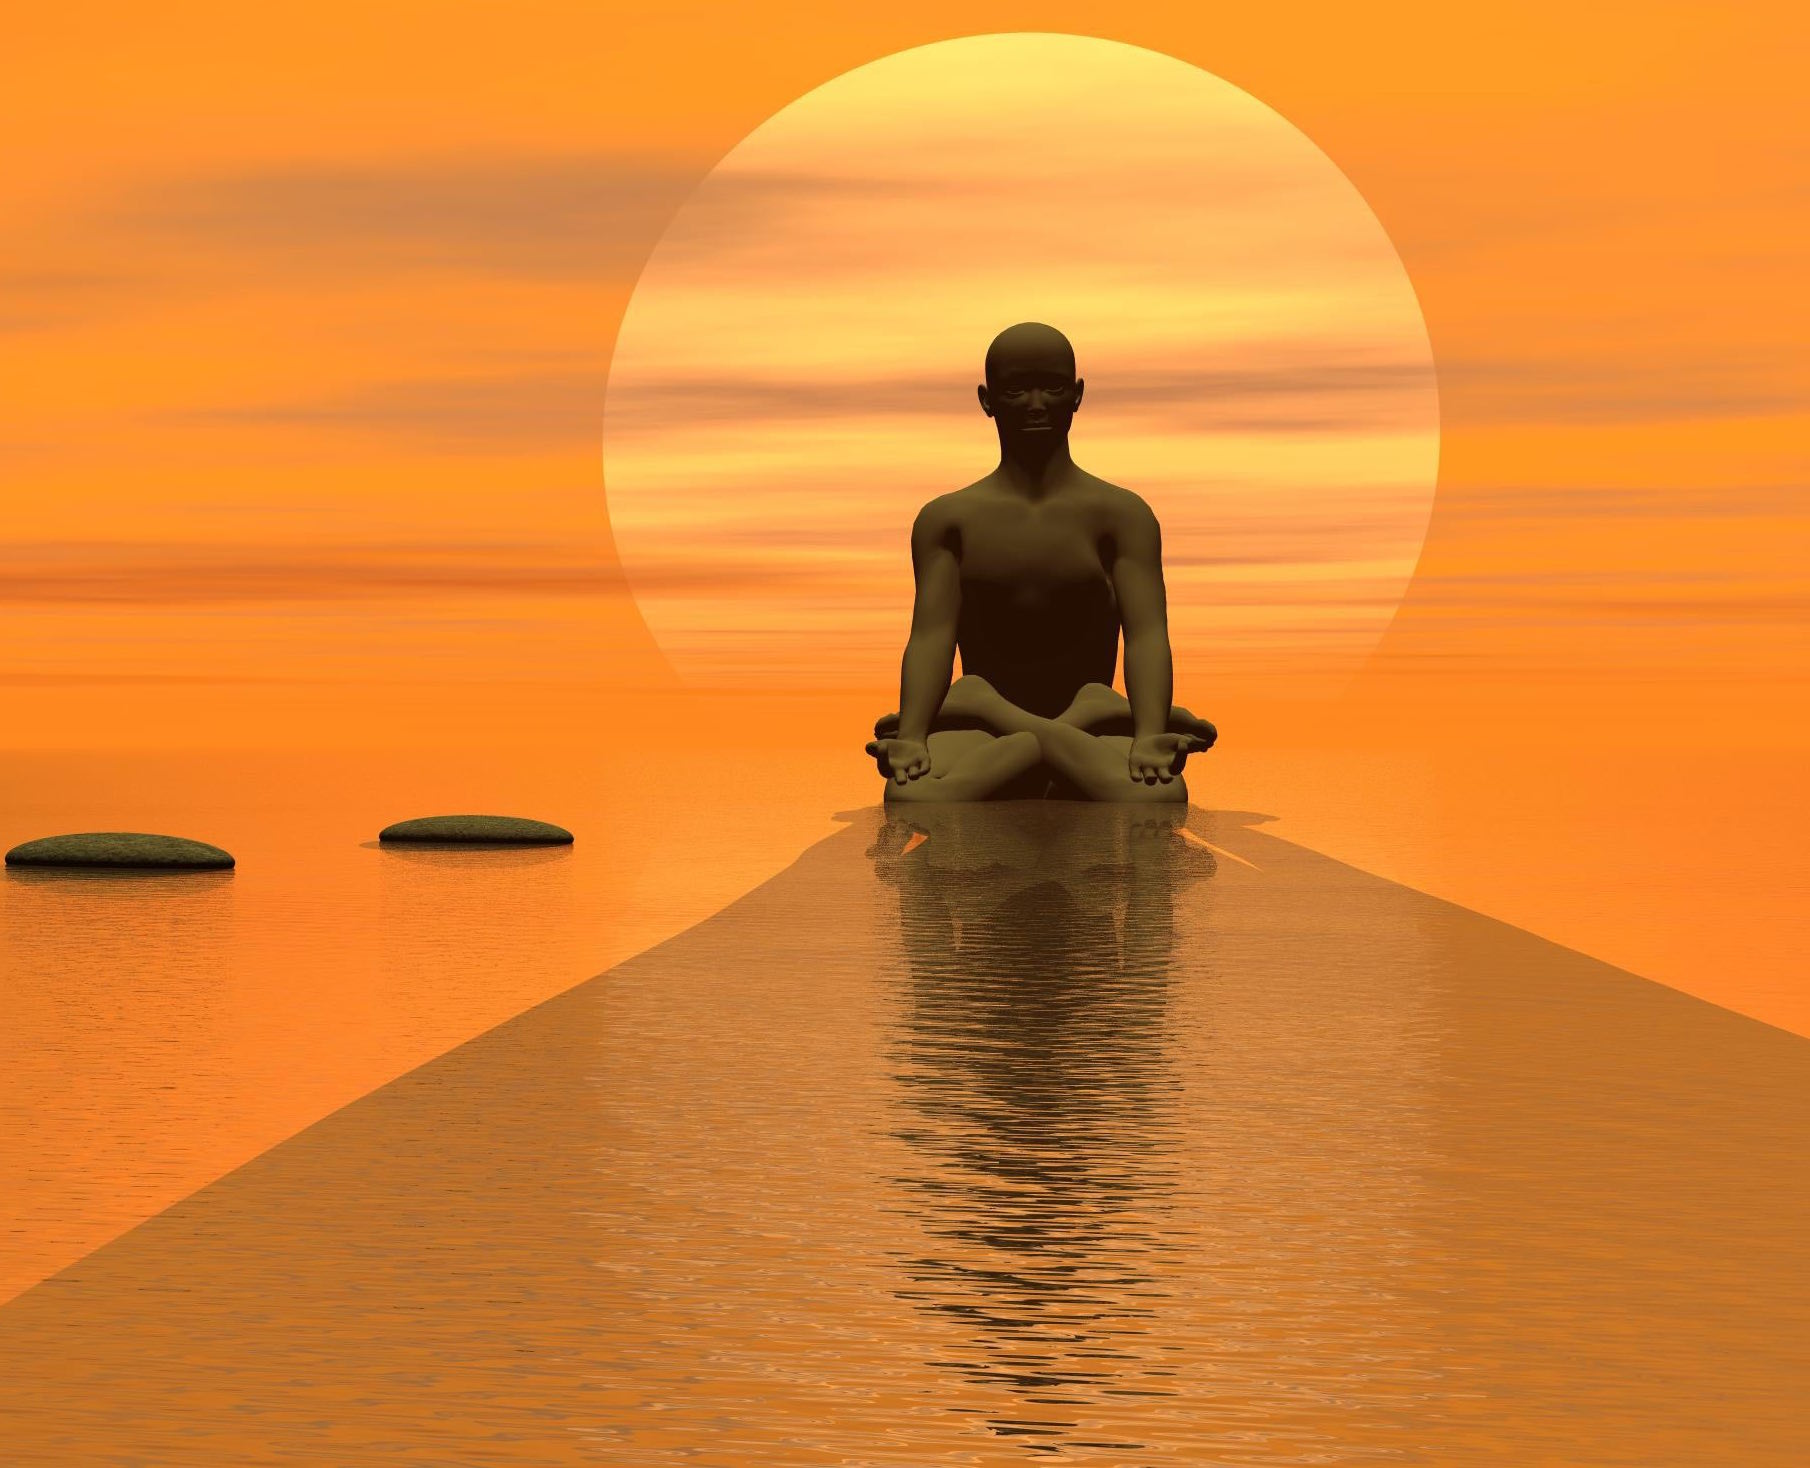 Steps over the ocean  to meditating man in front of the sun by beautiful sunset